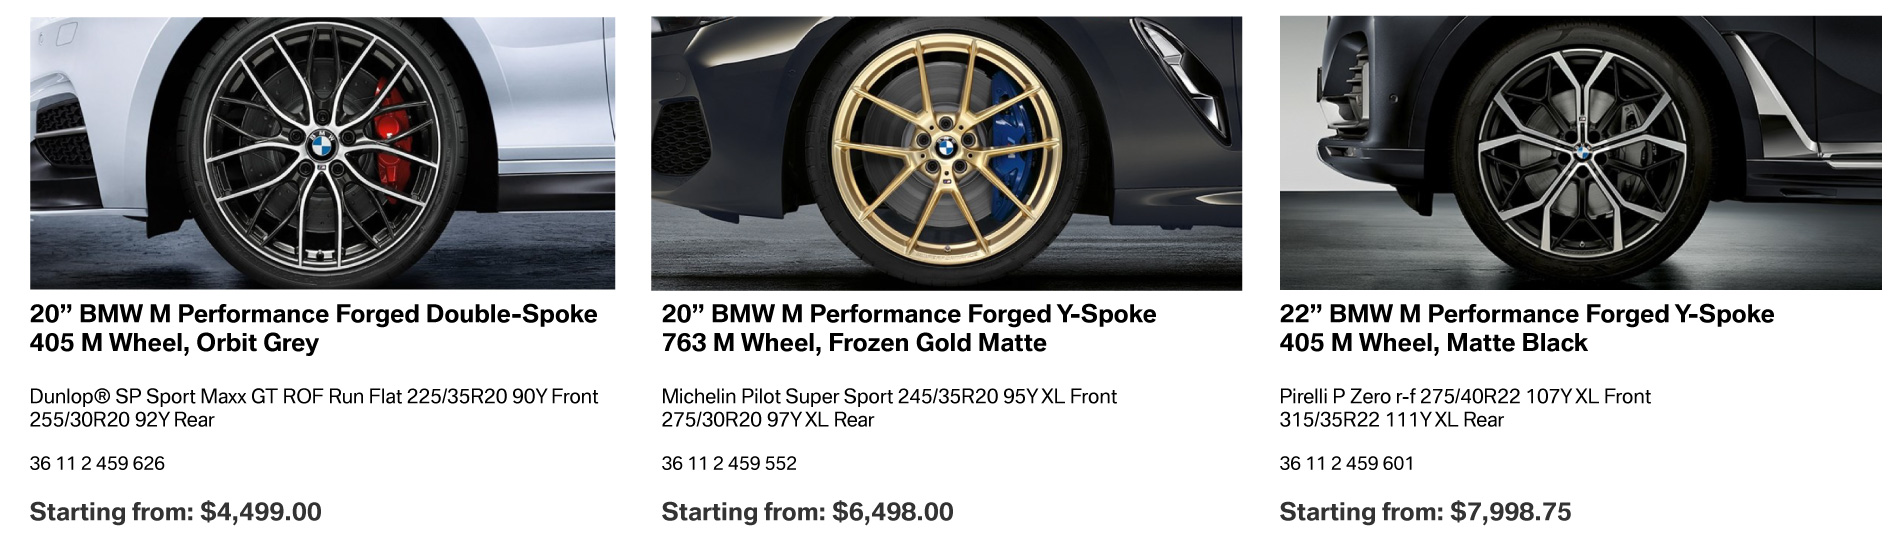 BMW Summer Wheel Packages May 2020